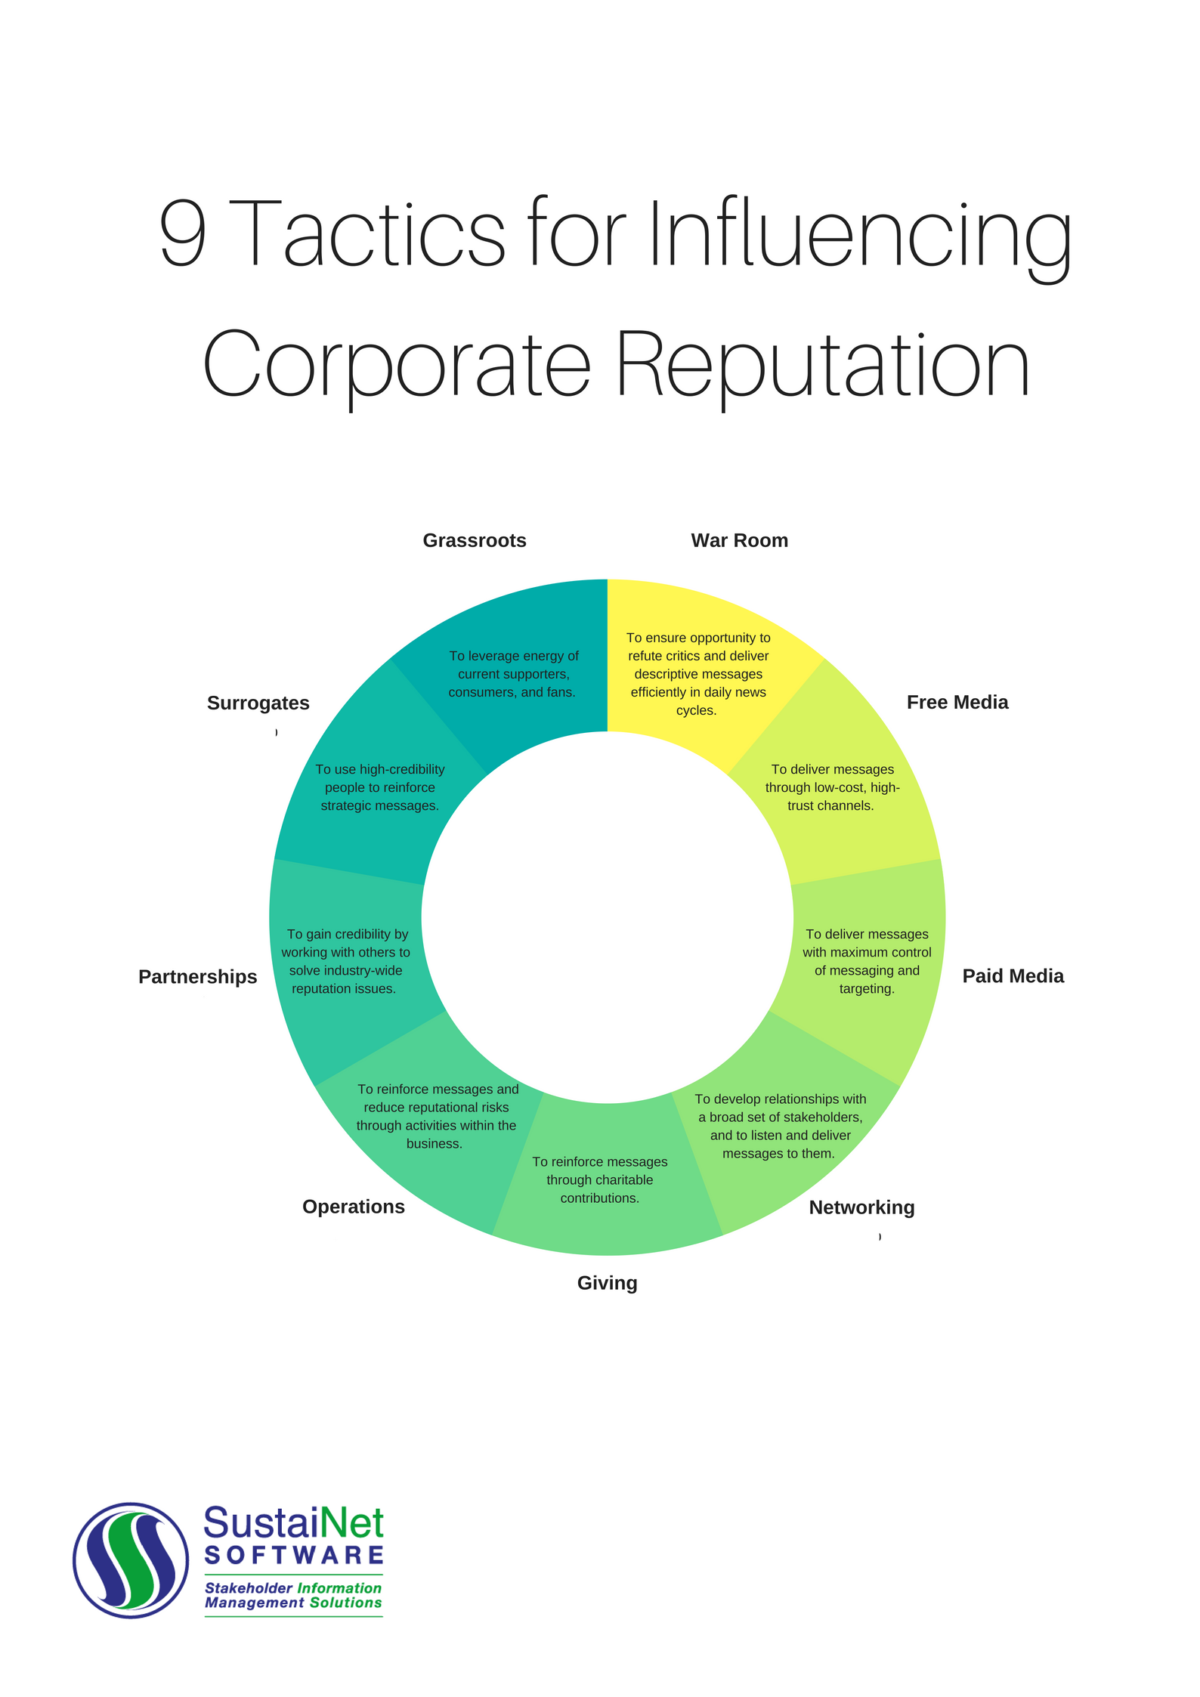 9 Tactics for Influencing Corporate Reputation